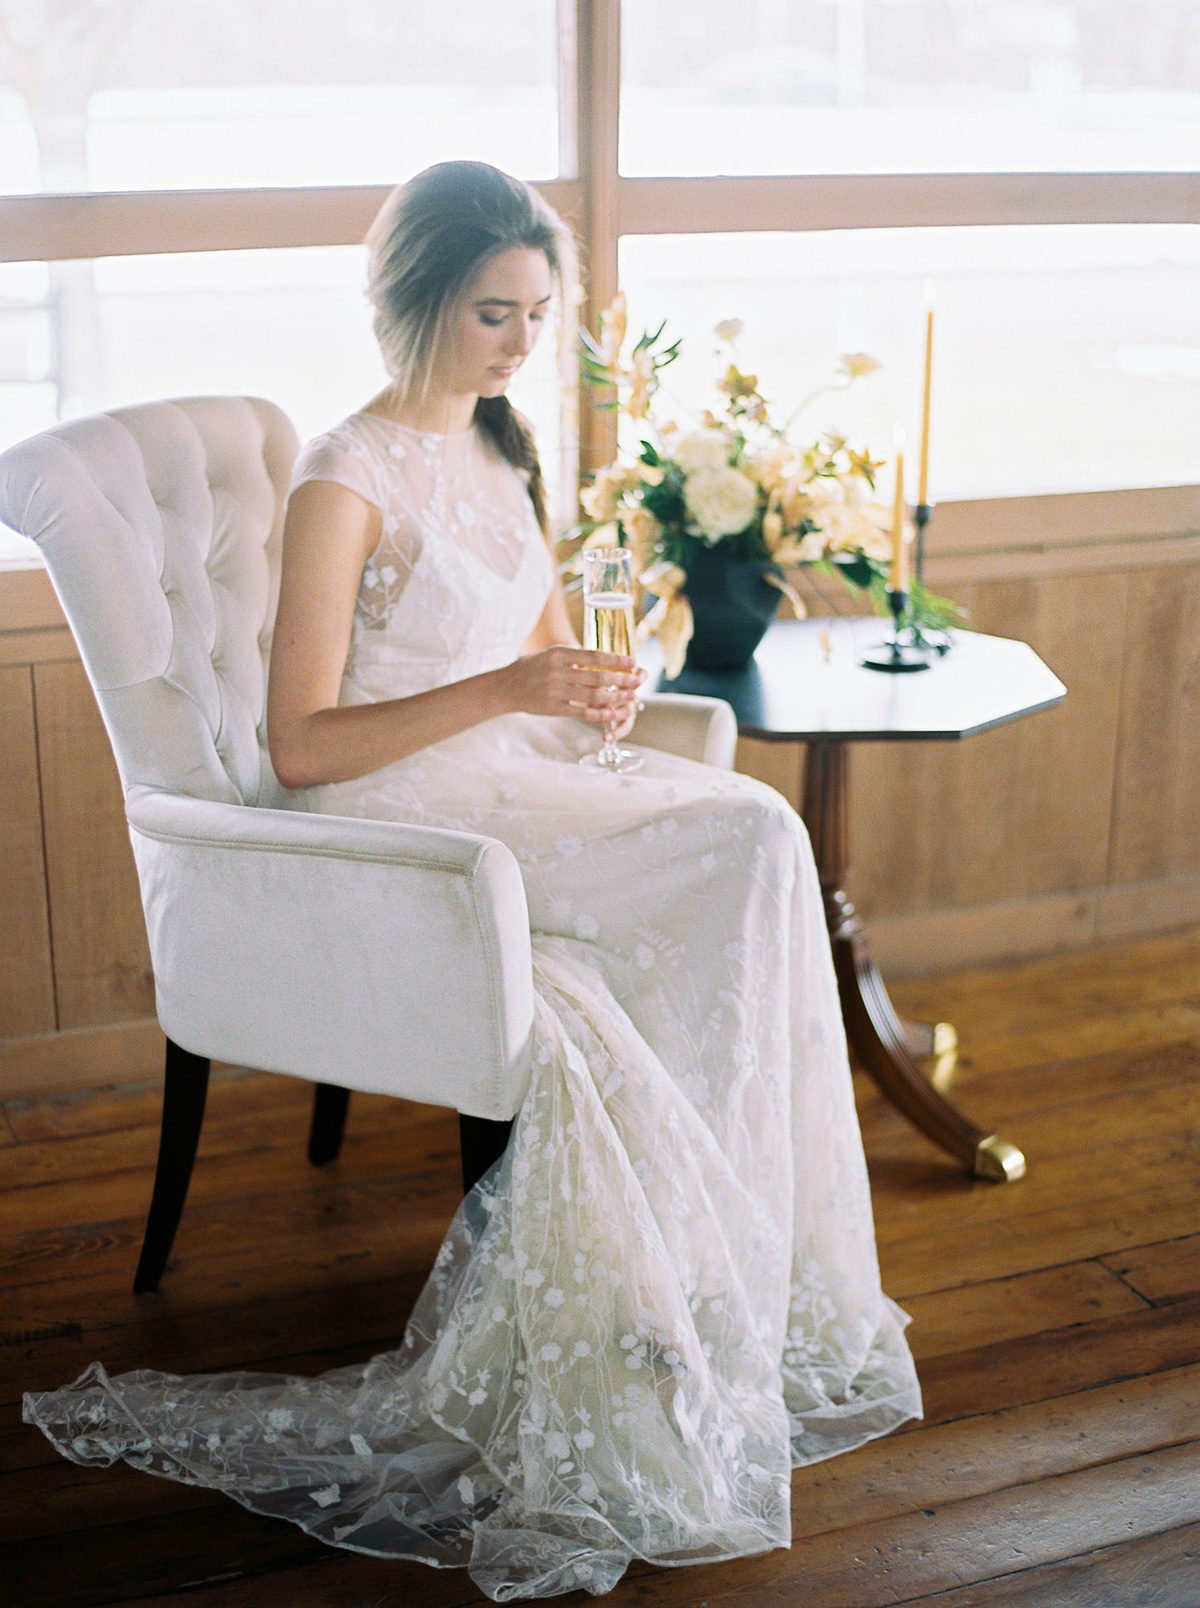 will-reid-photo-vineyard-bride-swish-list-kurtz-orchards-market-niagara-on-the-lake-wedding-editorial-39.jpg